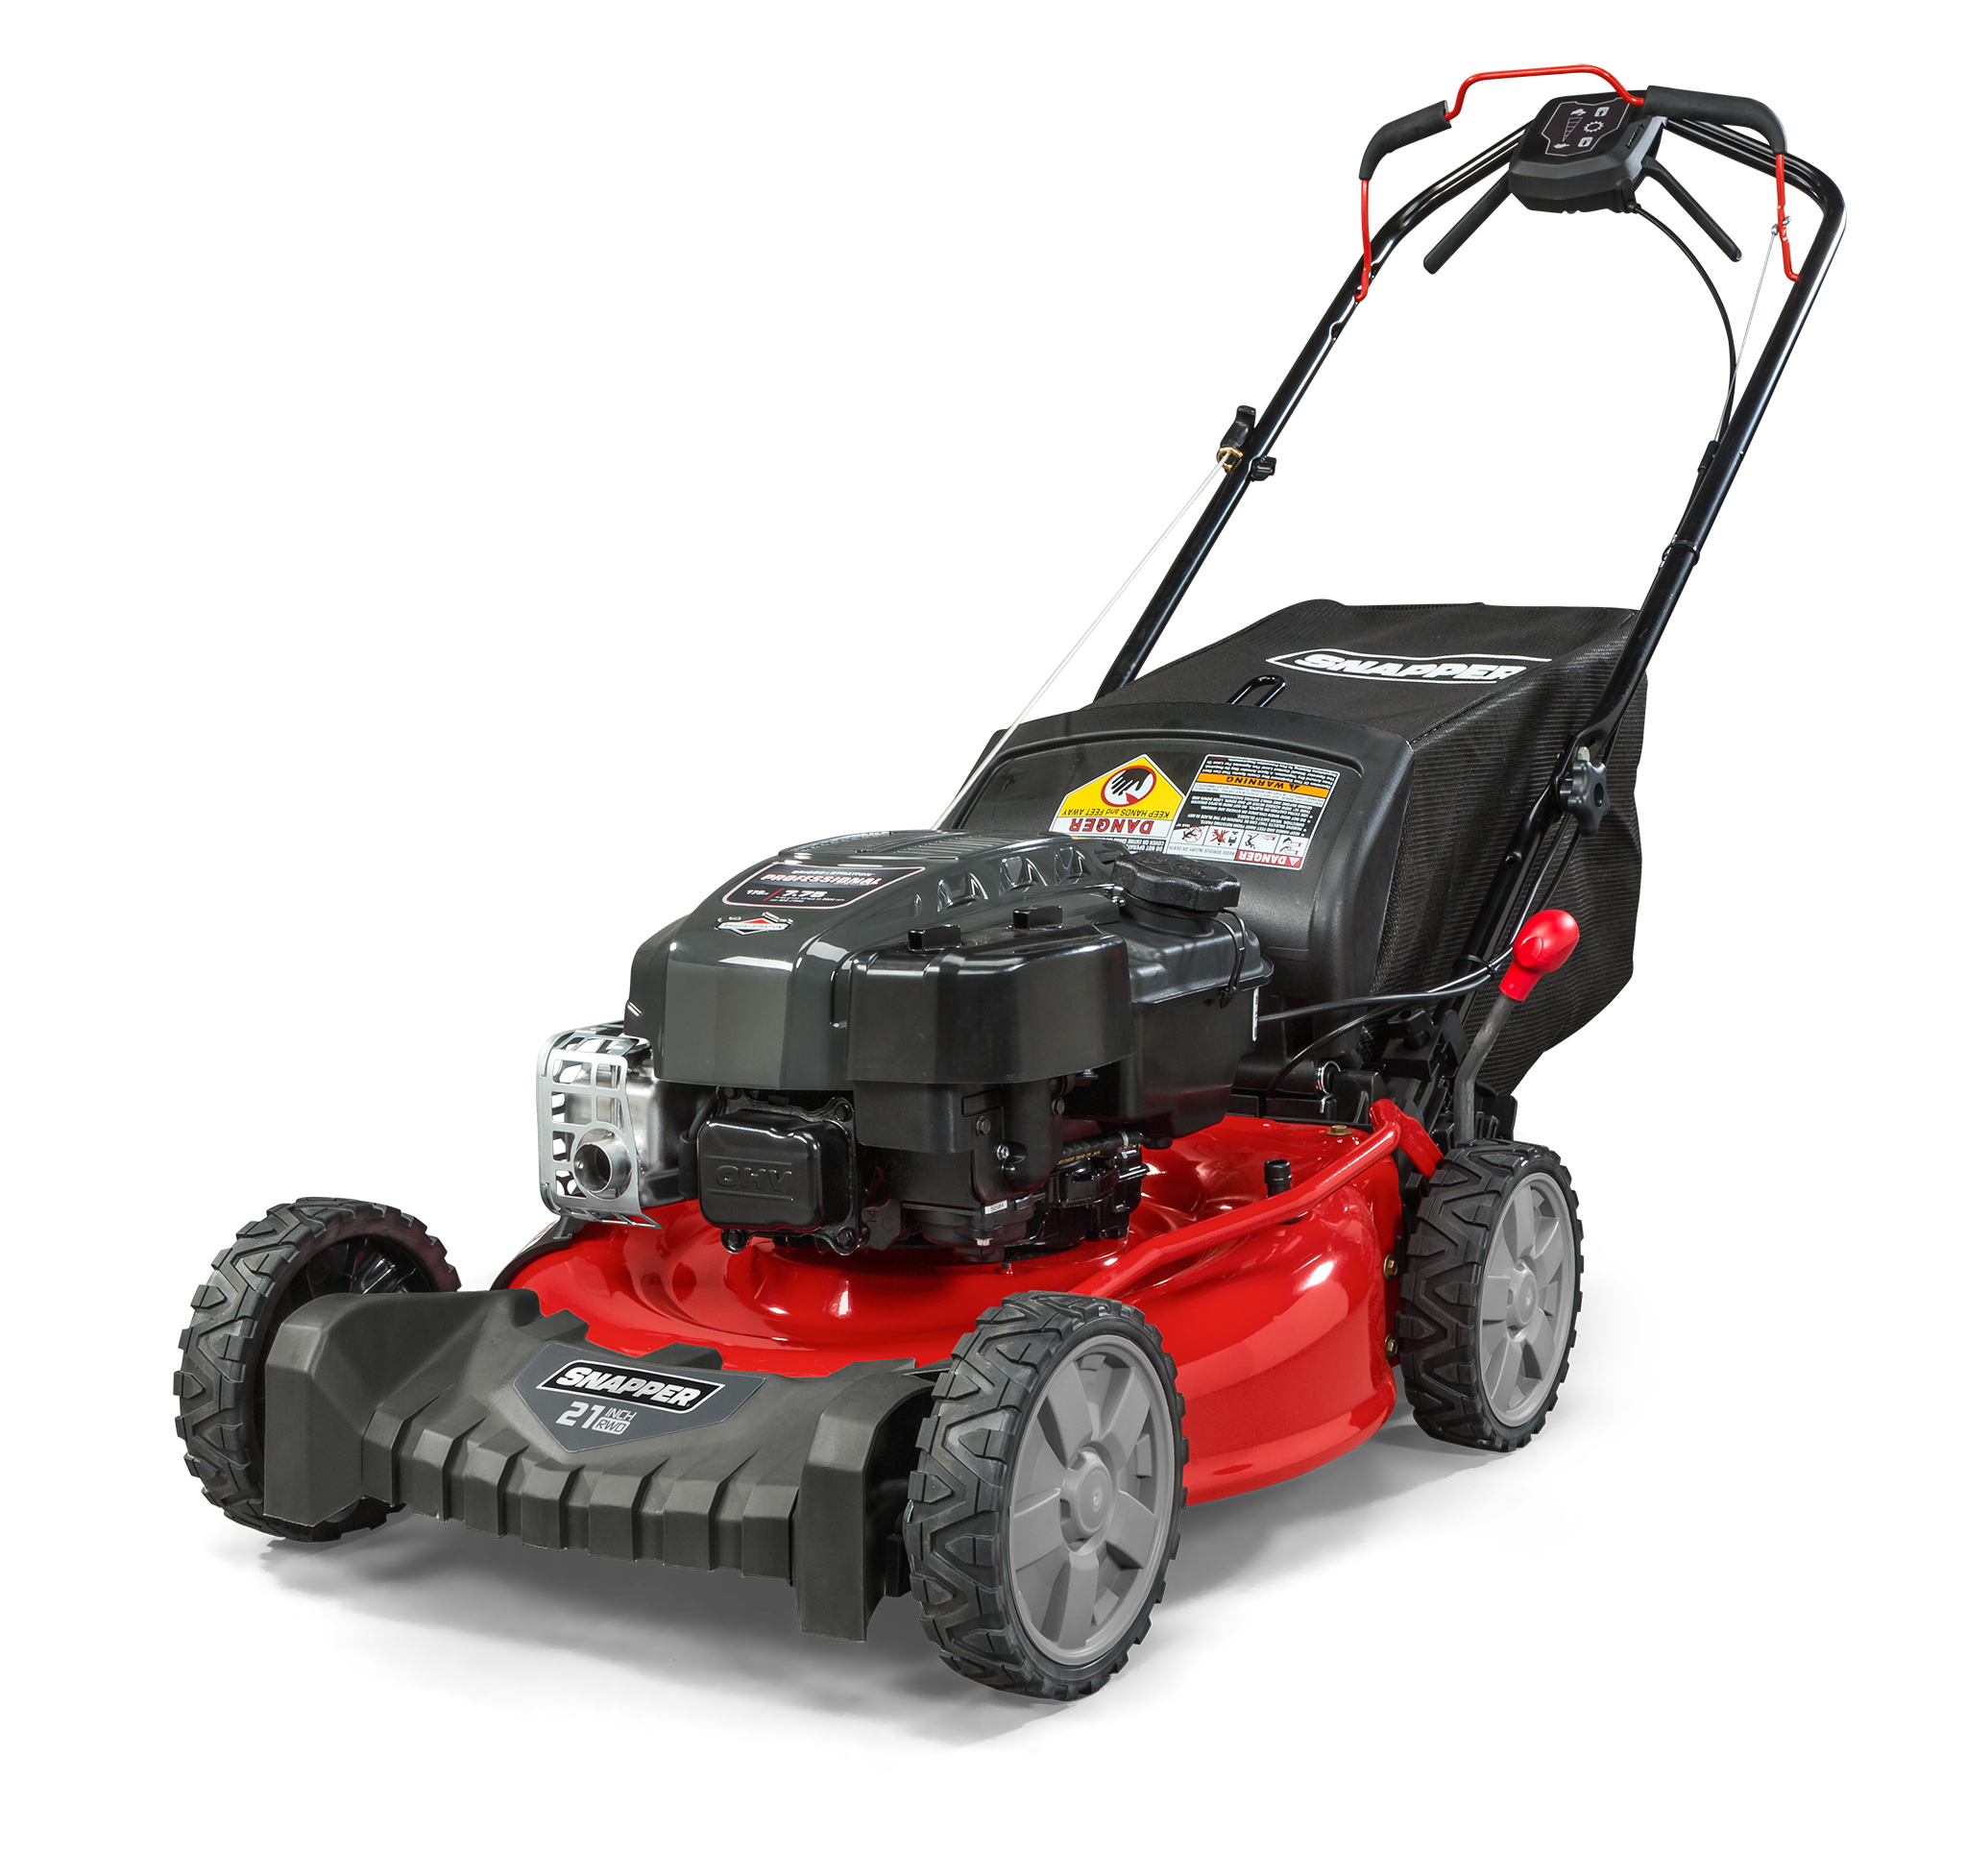 "Snapper 21"" Gas Self Propelled Rear Wheel Drive Lawn Mower with Briggs and Stratton Engine, Side Discharge, Mulching, Rear Bag"